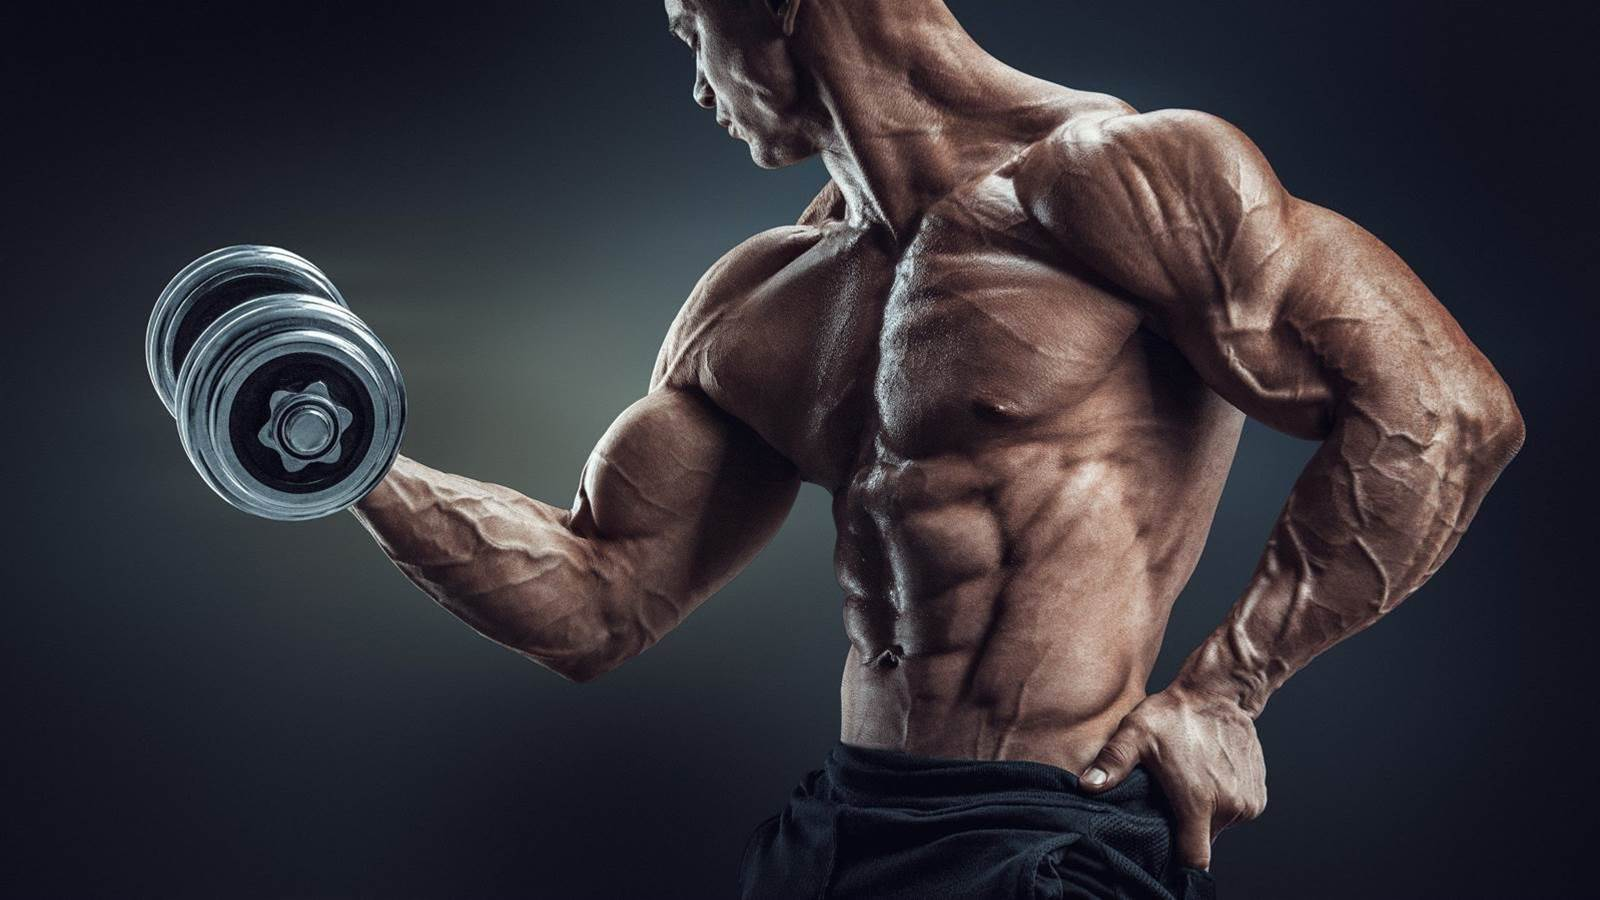 Are big veins a sign of fitness?